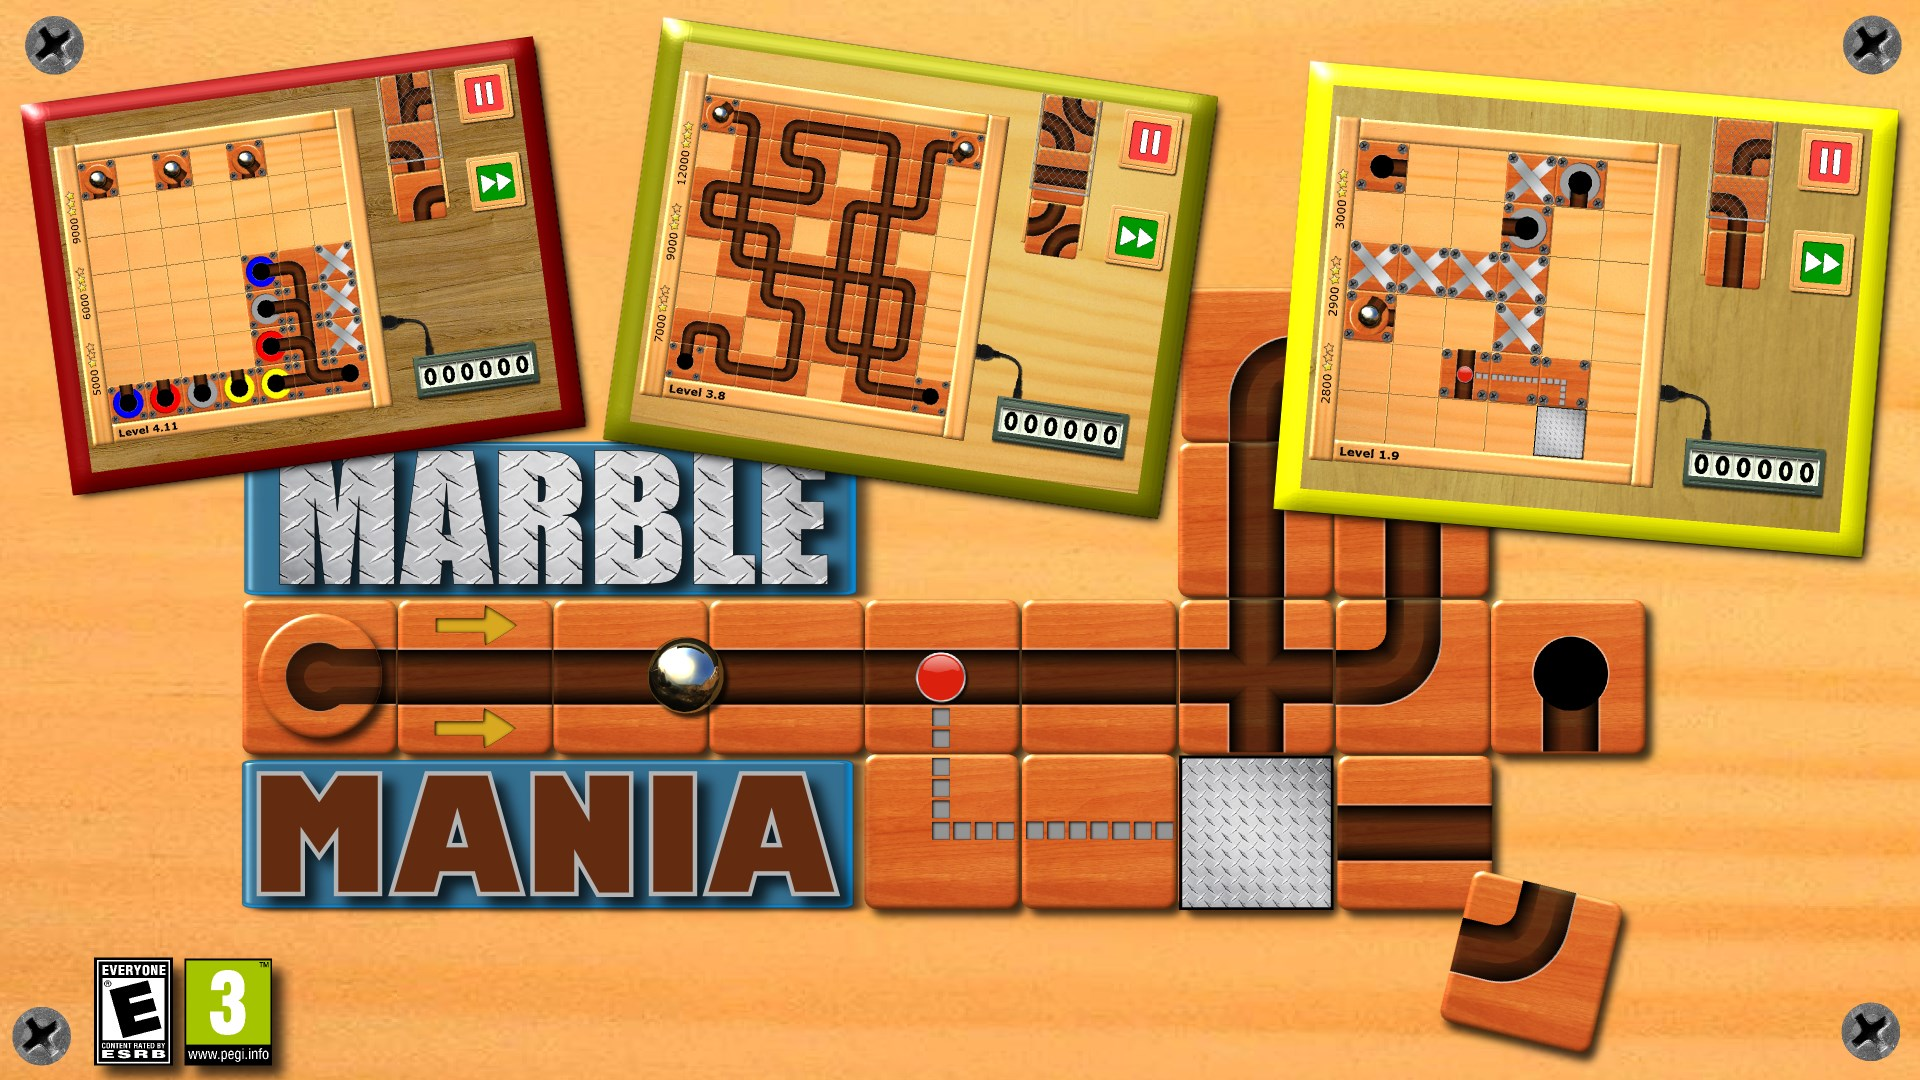 Get Marble Mania Ball Maze – action puzzle game - Microsoft